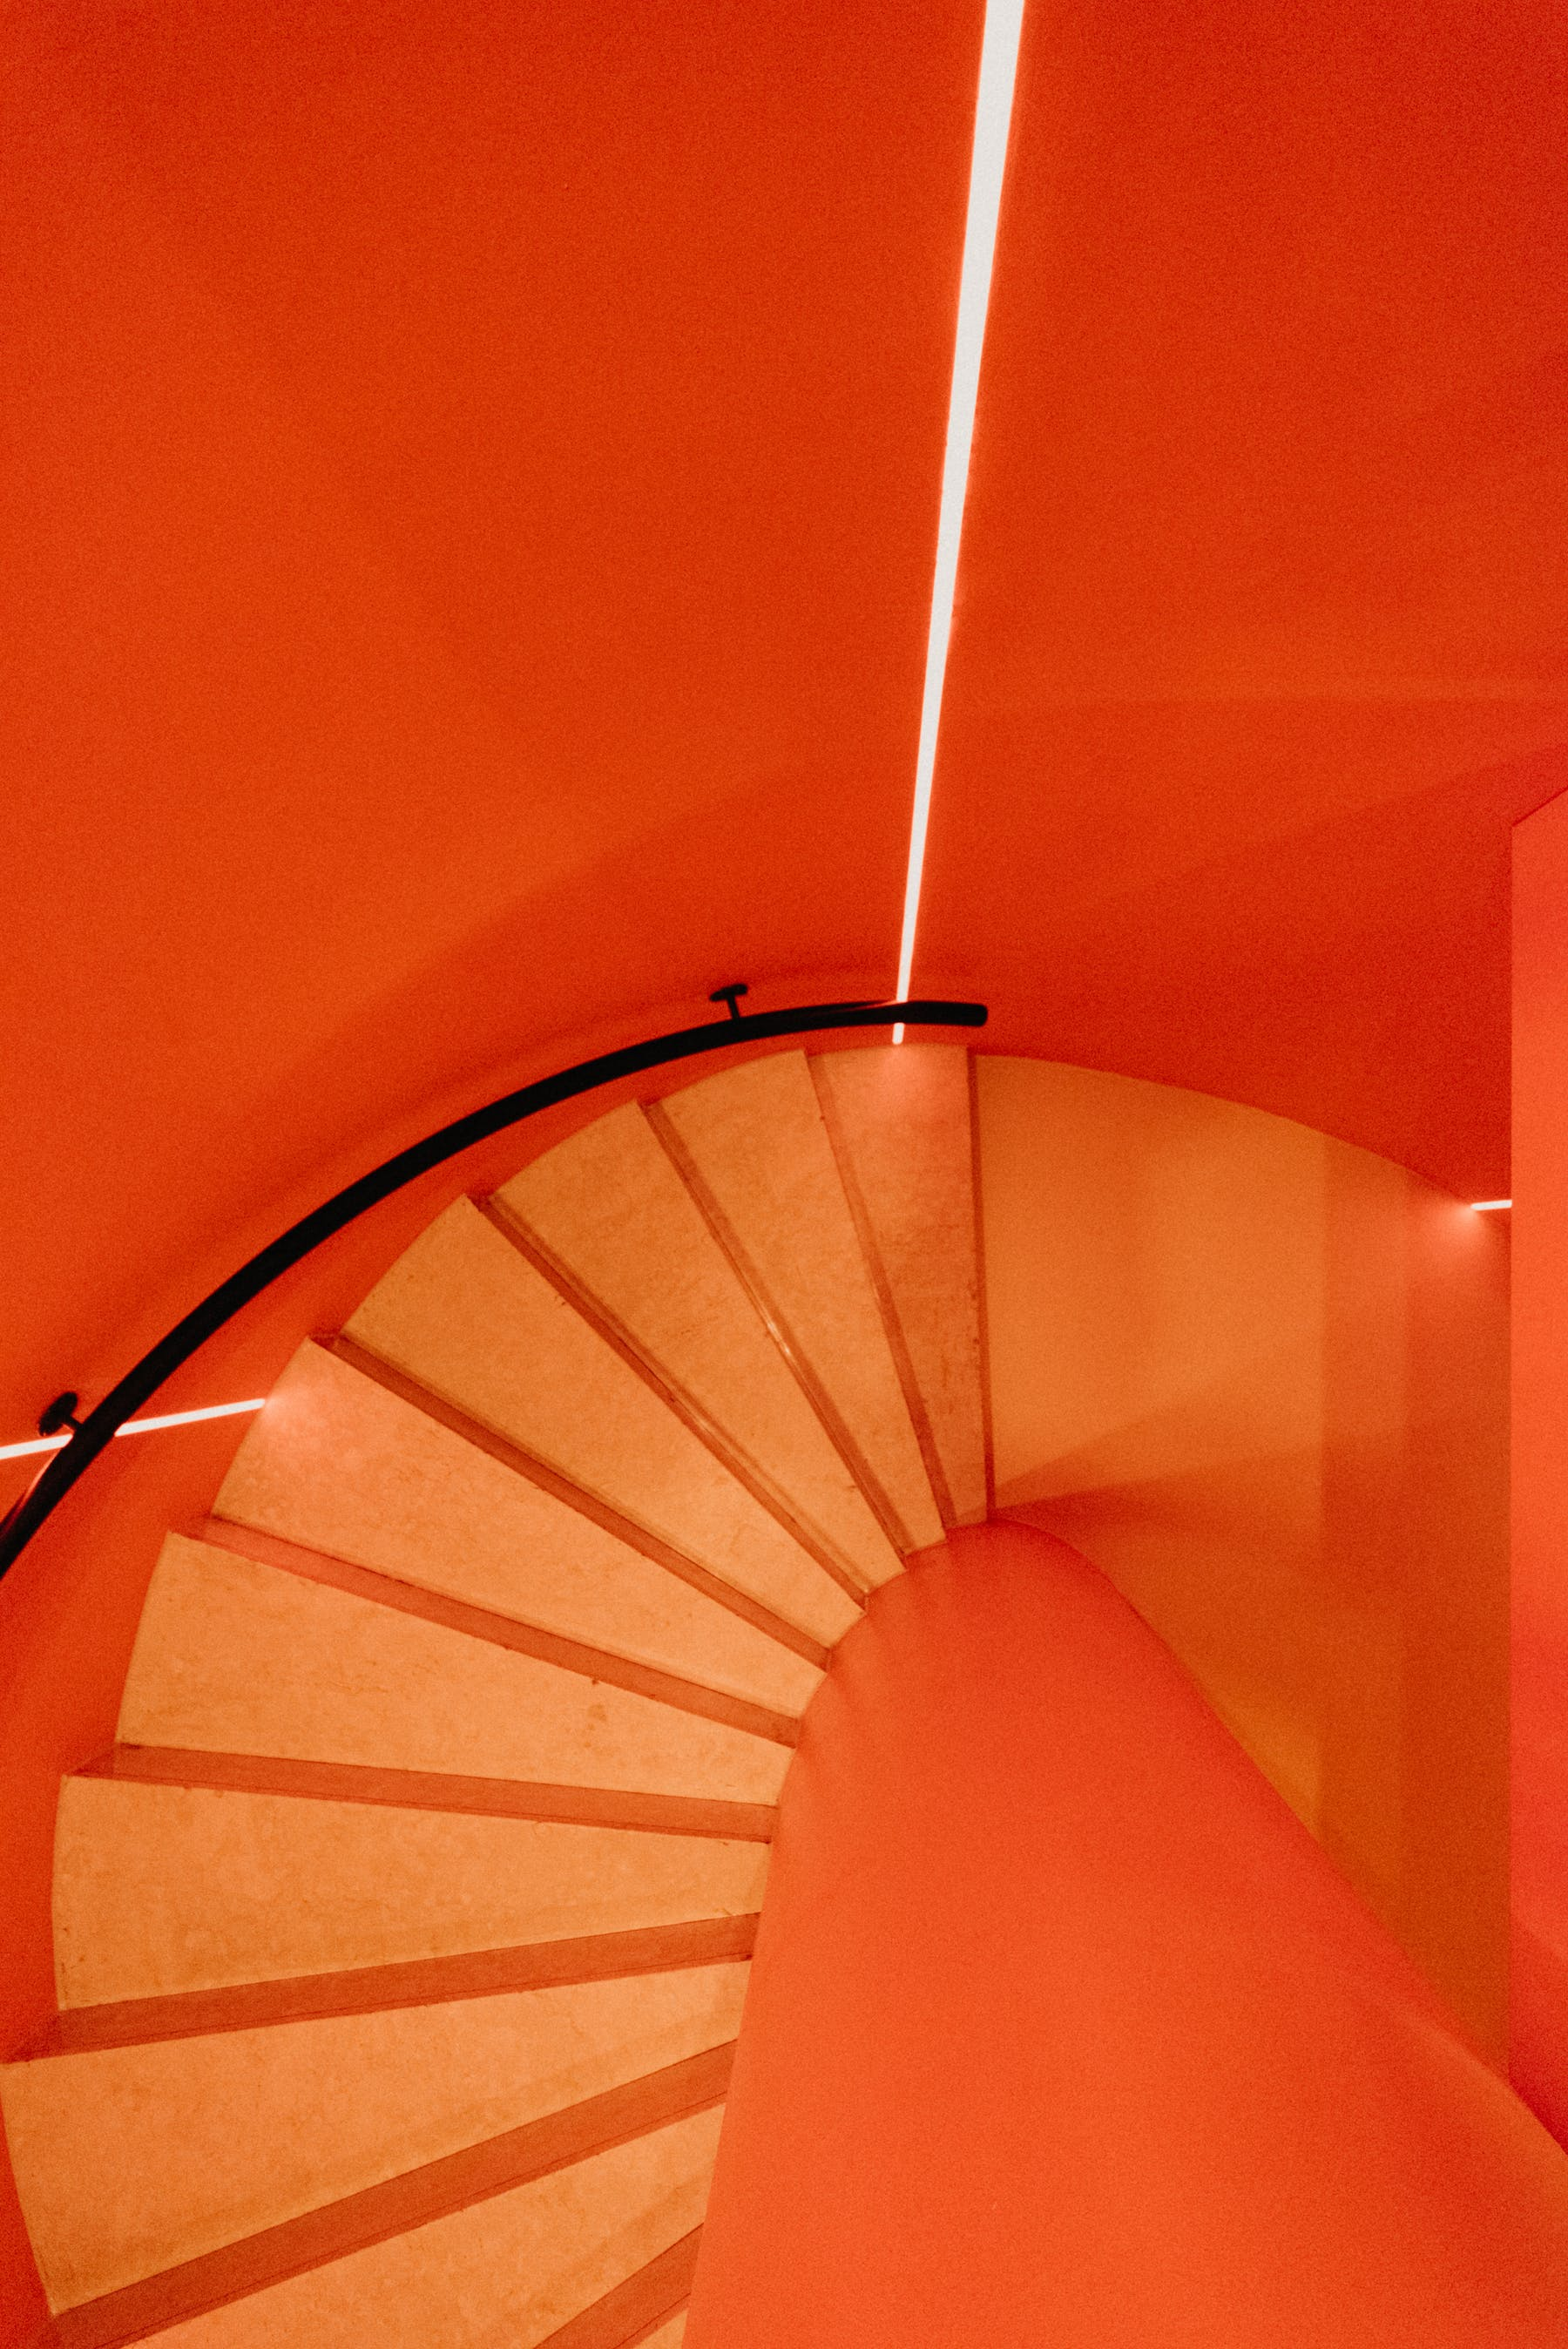 a large orange staircase